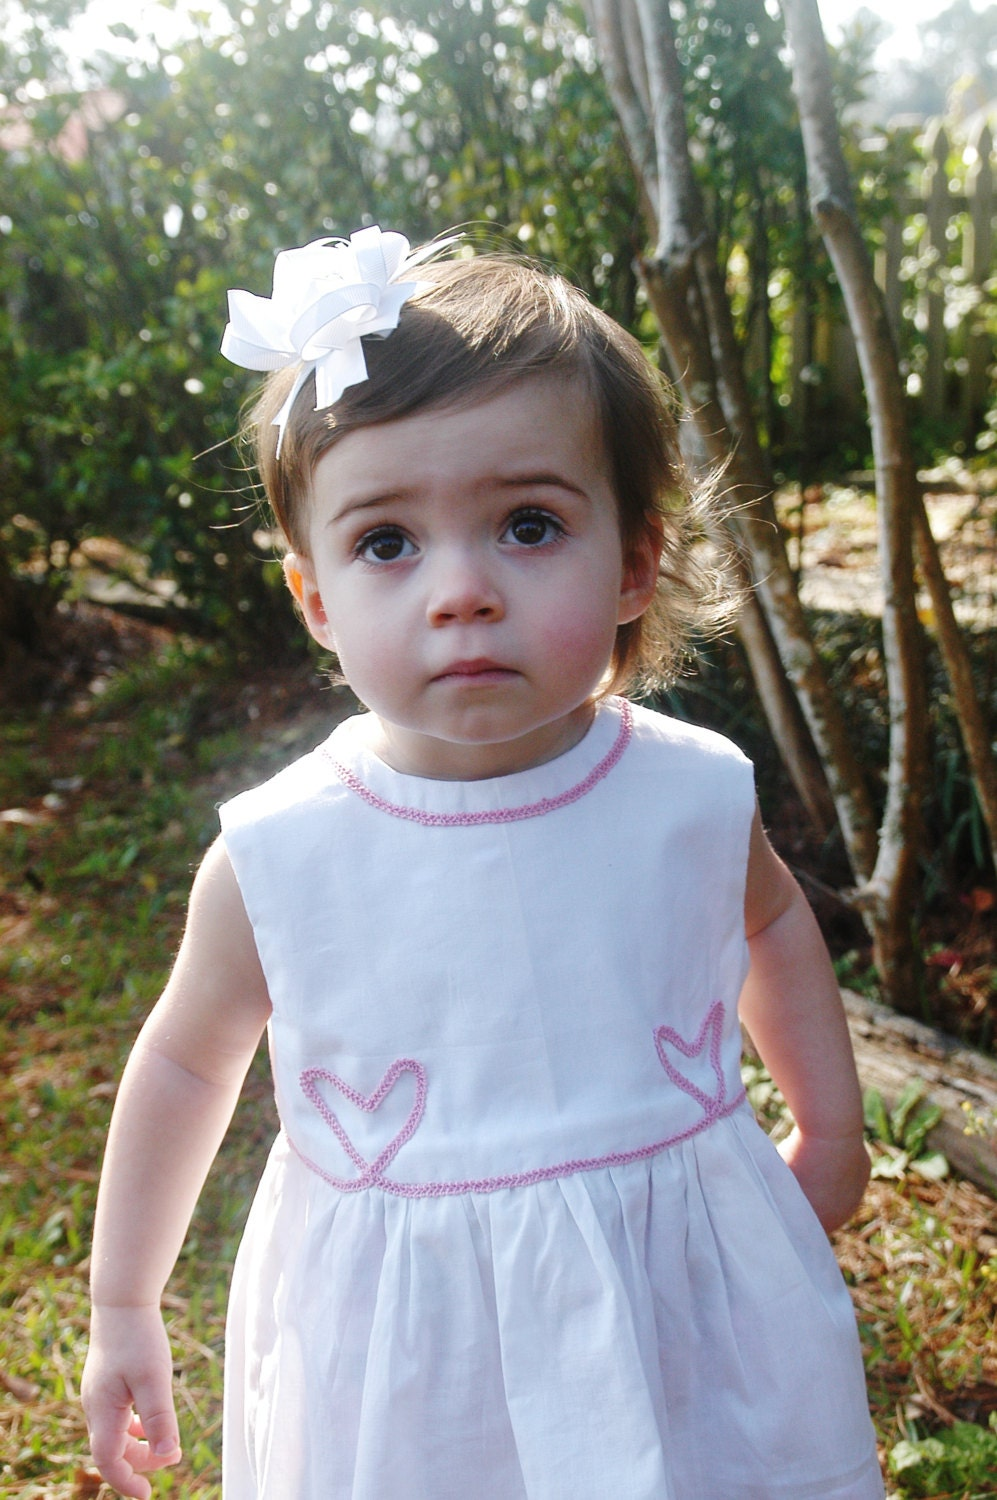 White Waterfall Dress with Pink Hearts by Papoose Clothing - papooseclothing